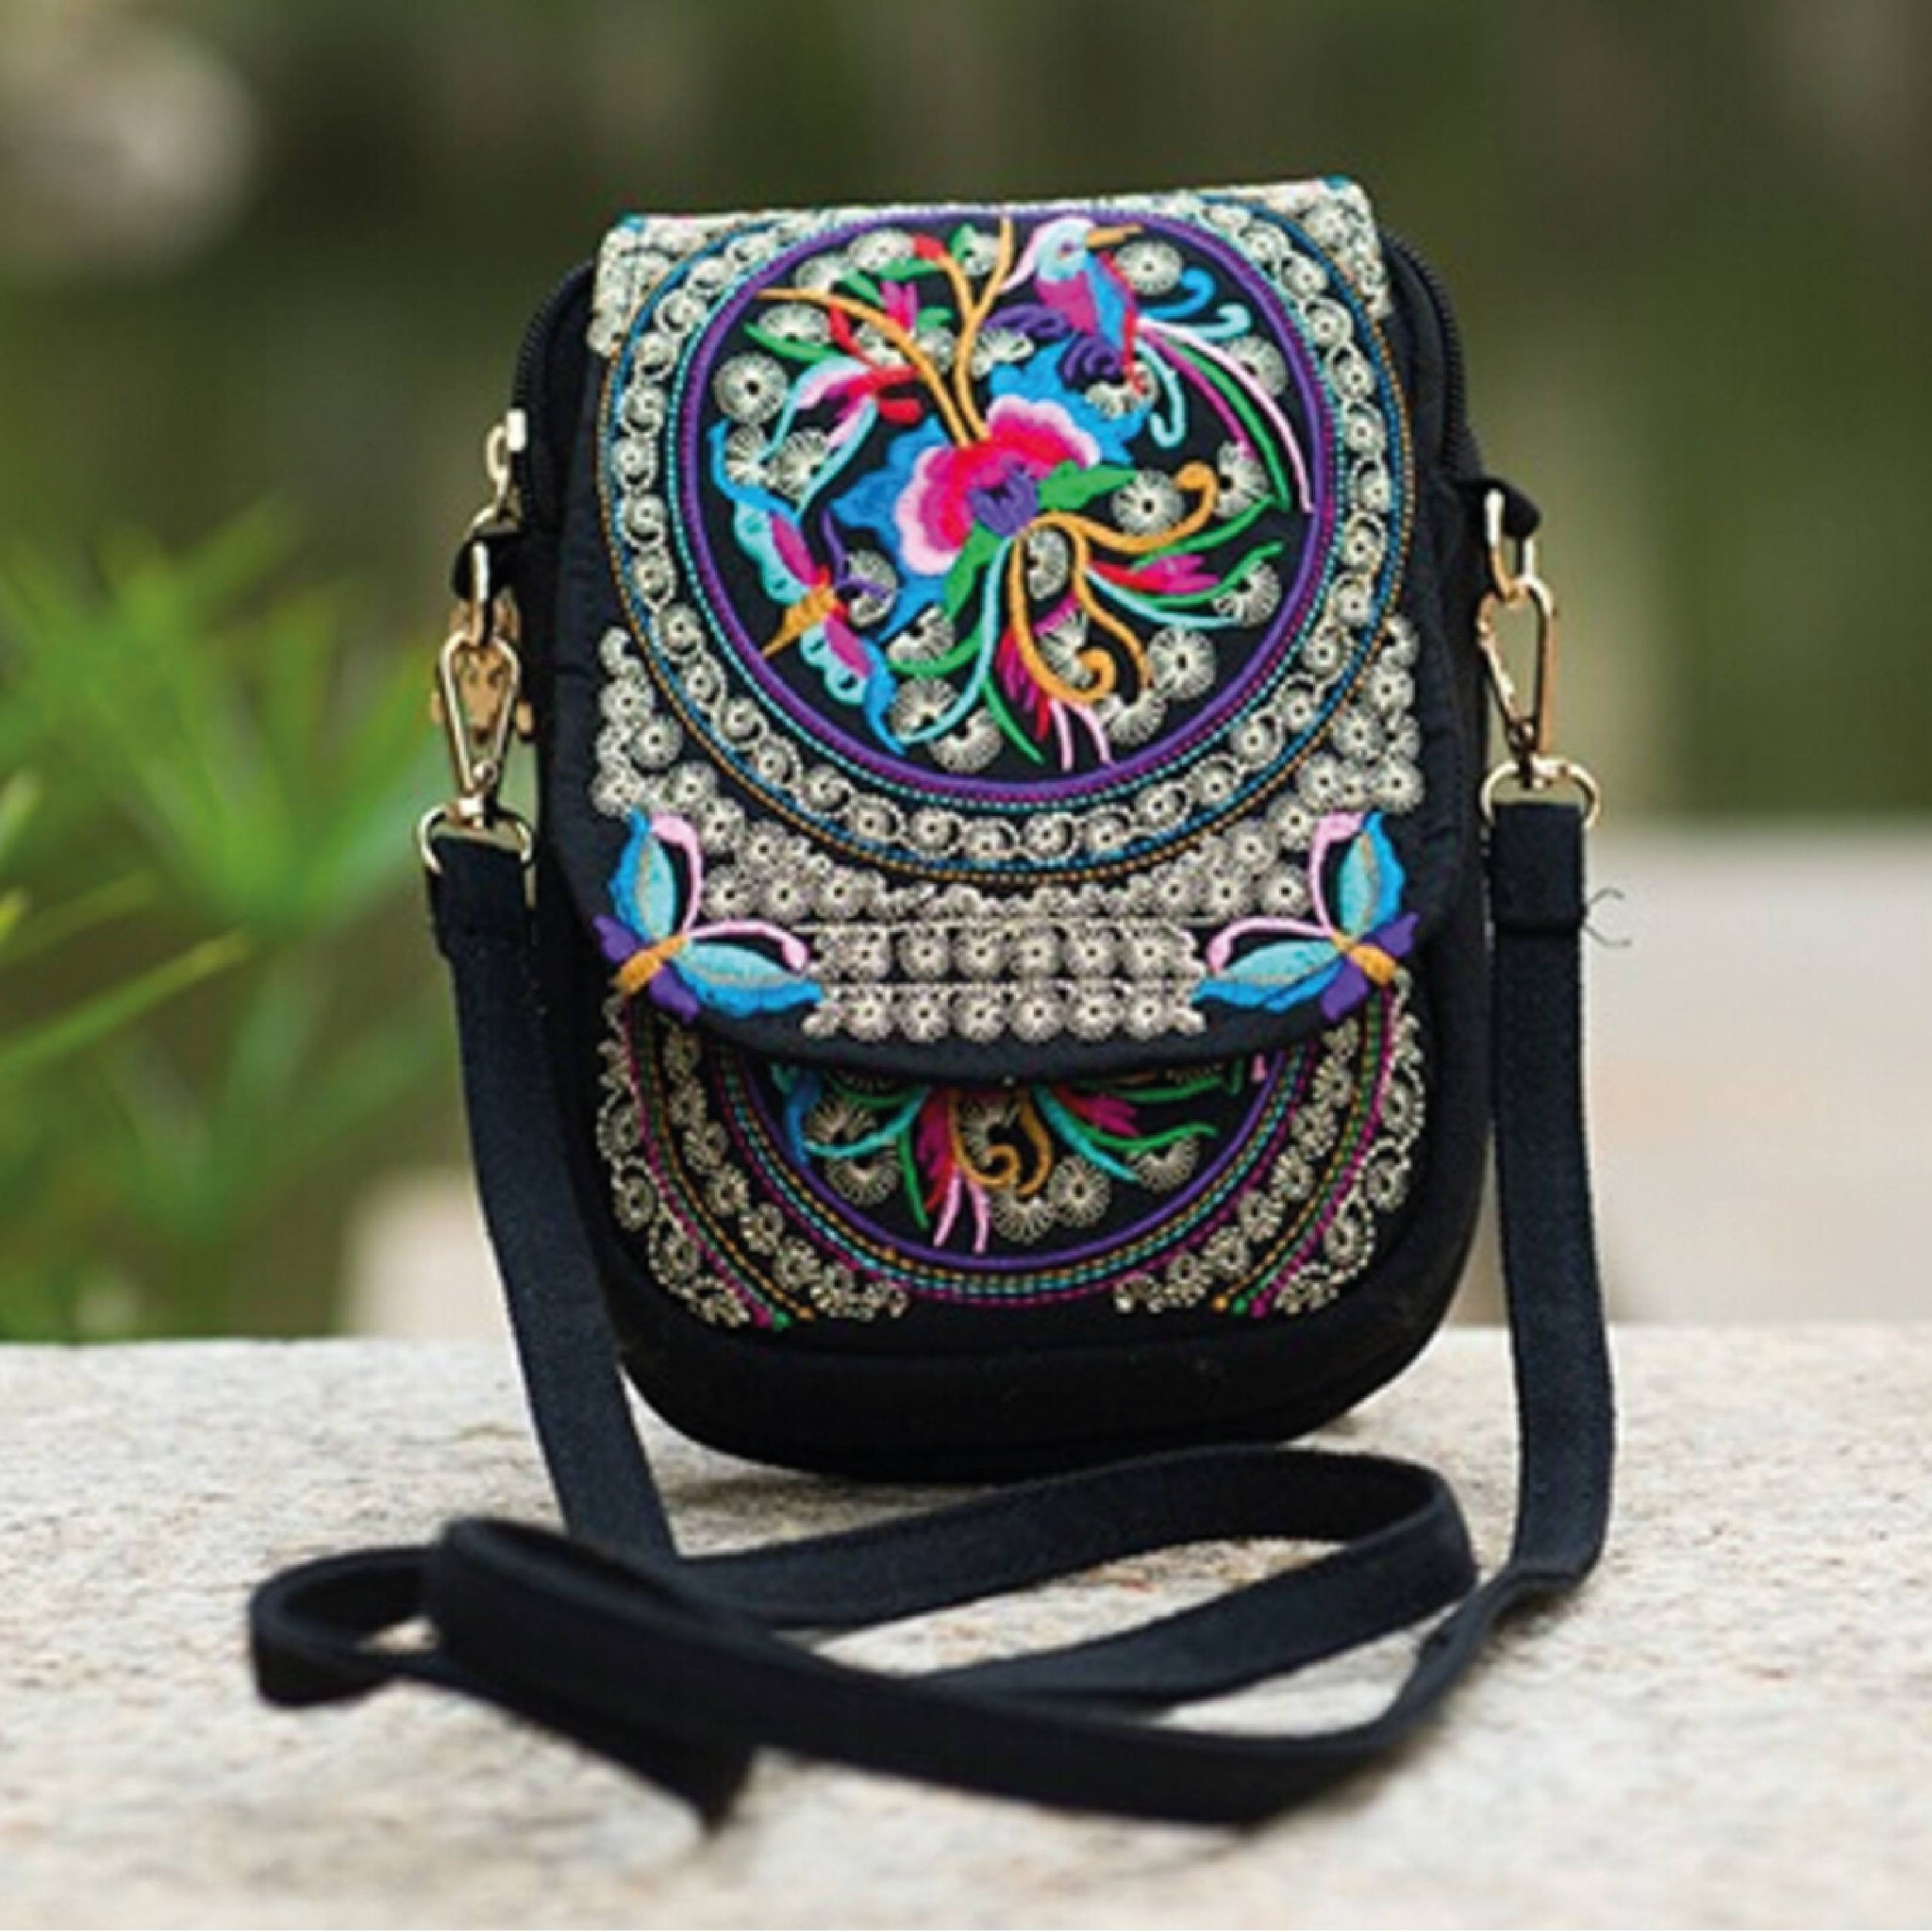 Hand Embroidered Ethnic Shoulder Bag